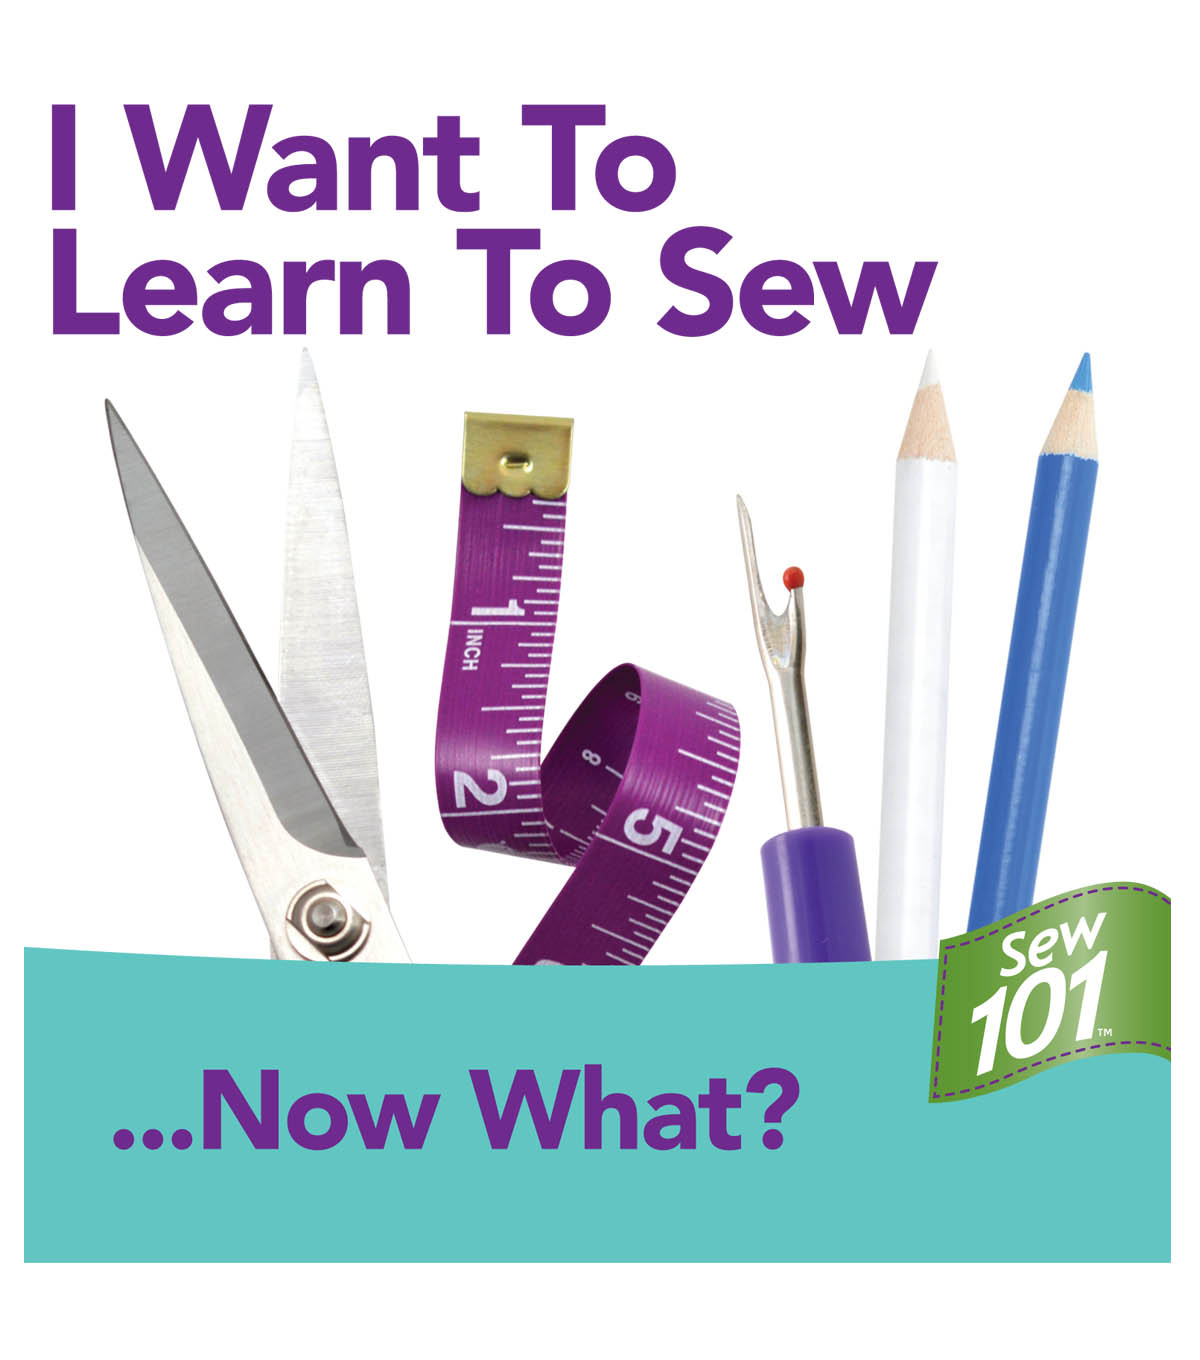 Sewing 101 Guide